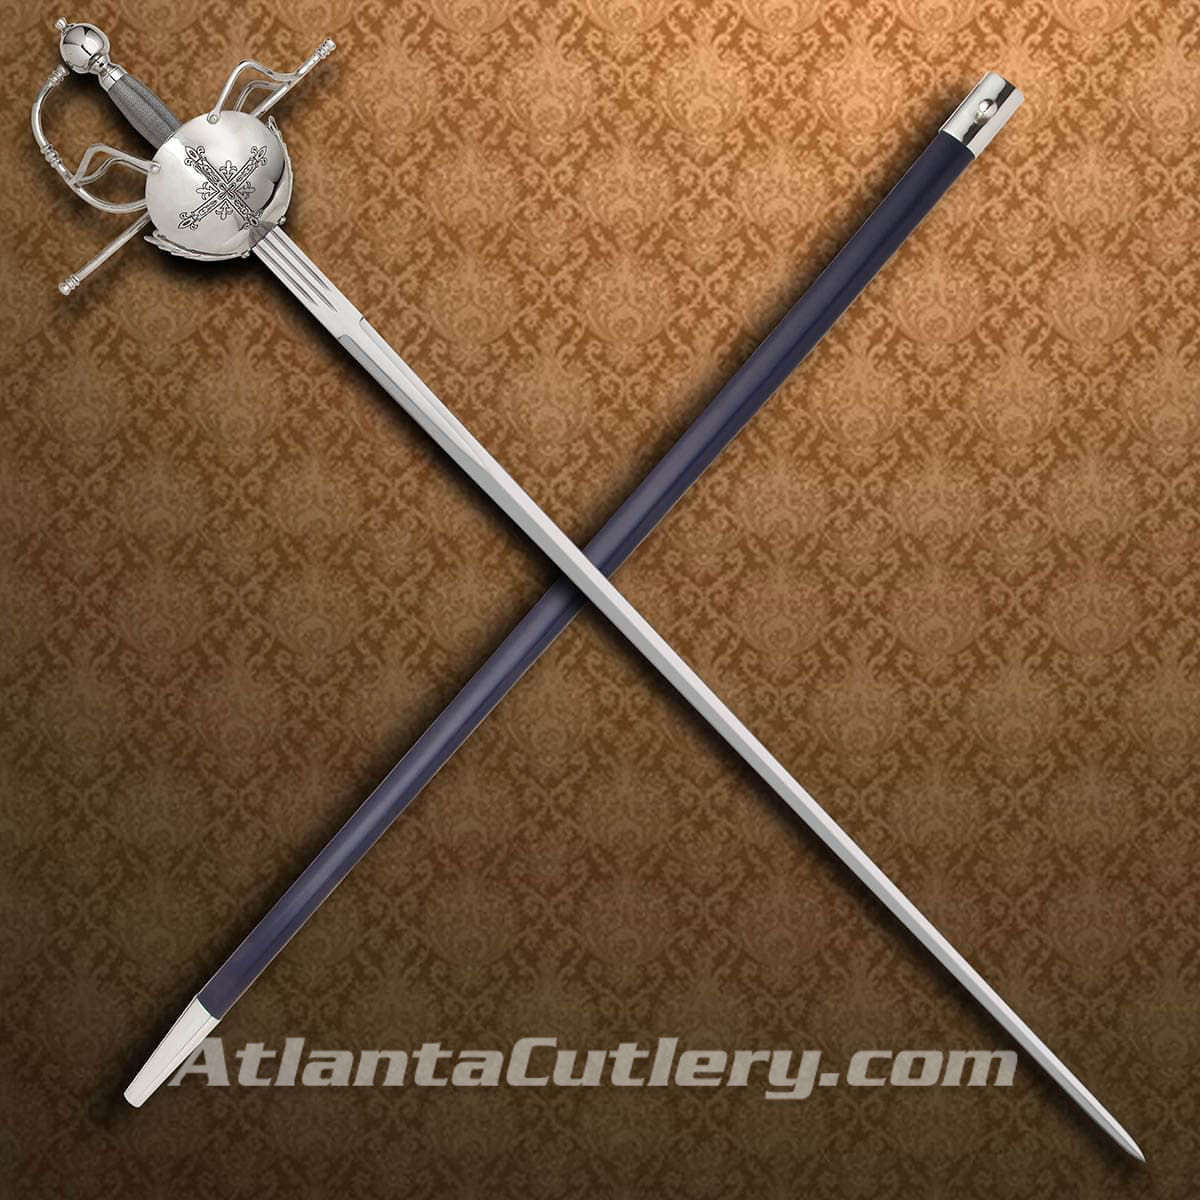 Musketeer rapier has nickel plated ambidextrous basket hilt, twisted wire grip, sharp high carbon steel blade and includes scabbard